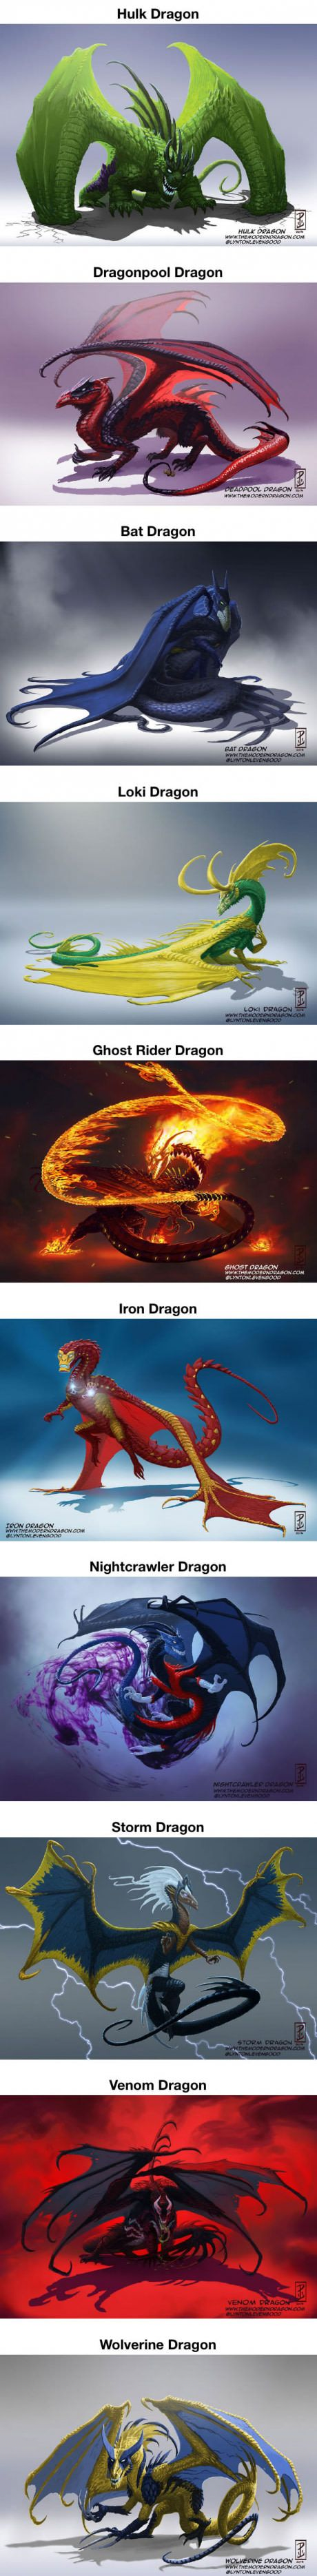 Re-Imagined Popular Comic Characters As Dragons. I think the ghost rider design is my favorite but they're all really creative!